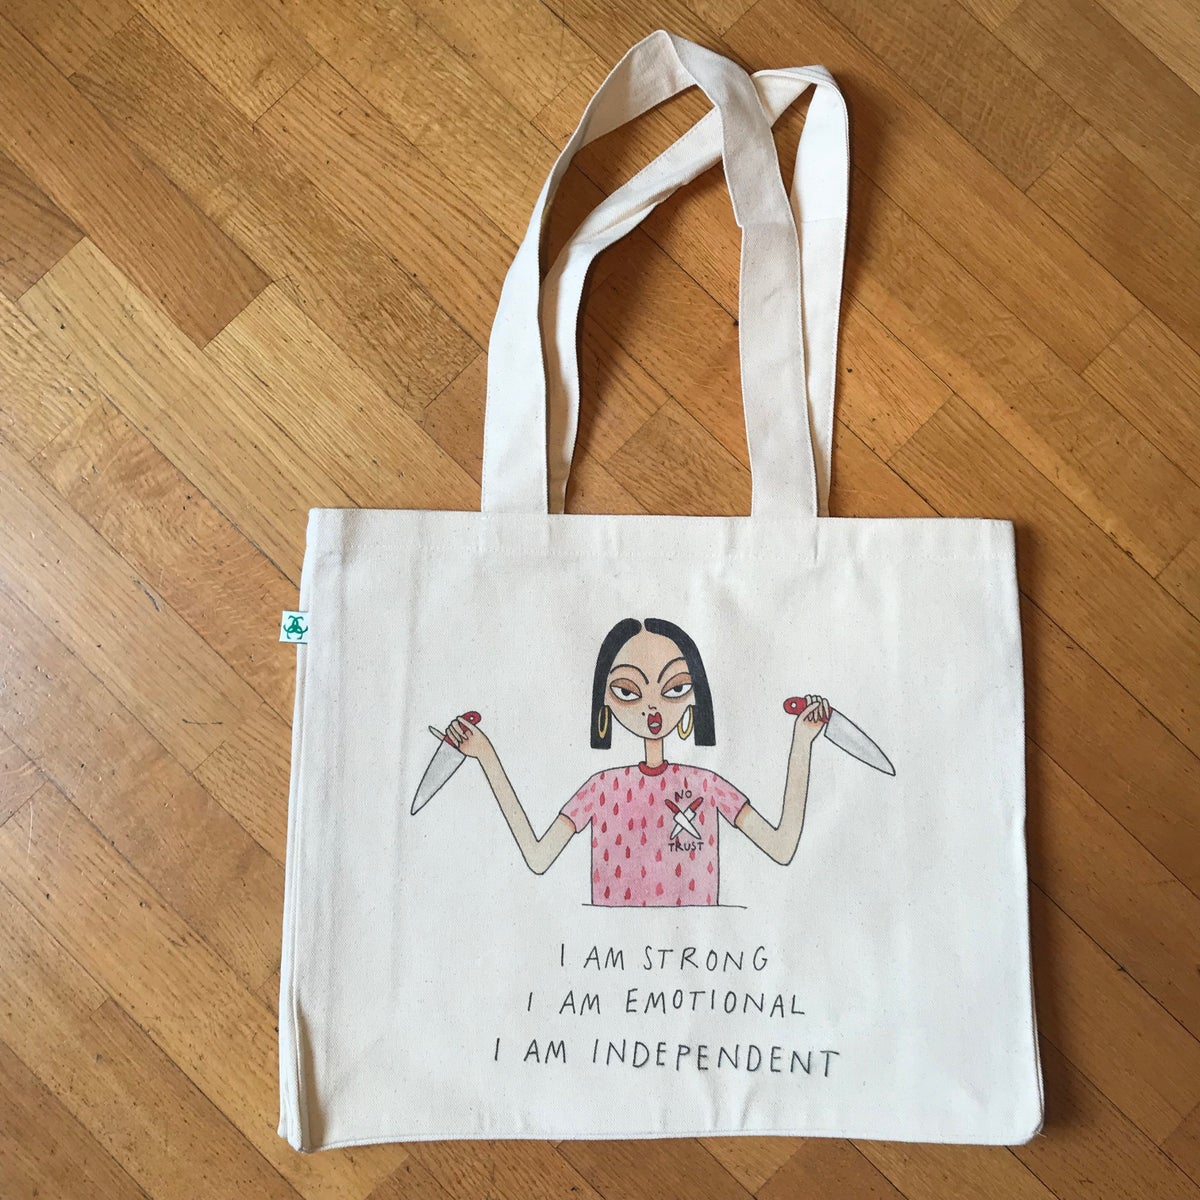 Image of I AM EMOTIONAL 2018 CANVAS BAG FOR LIFE